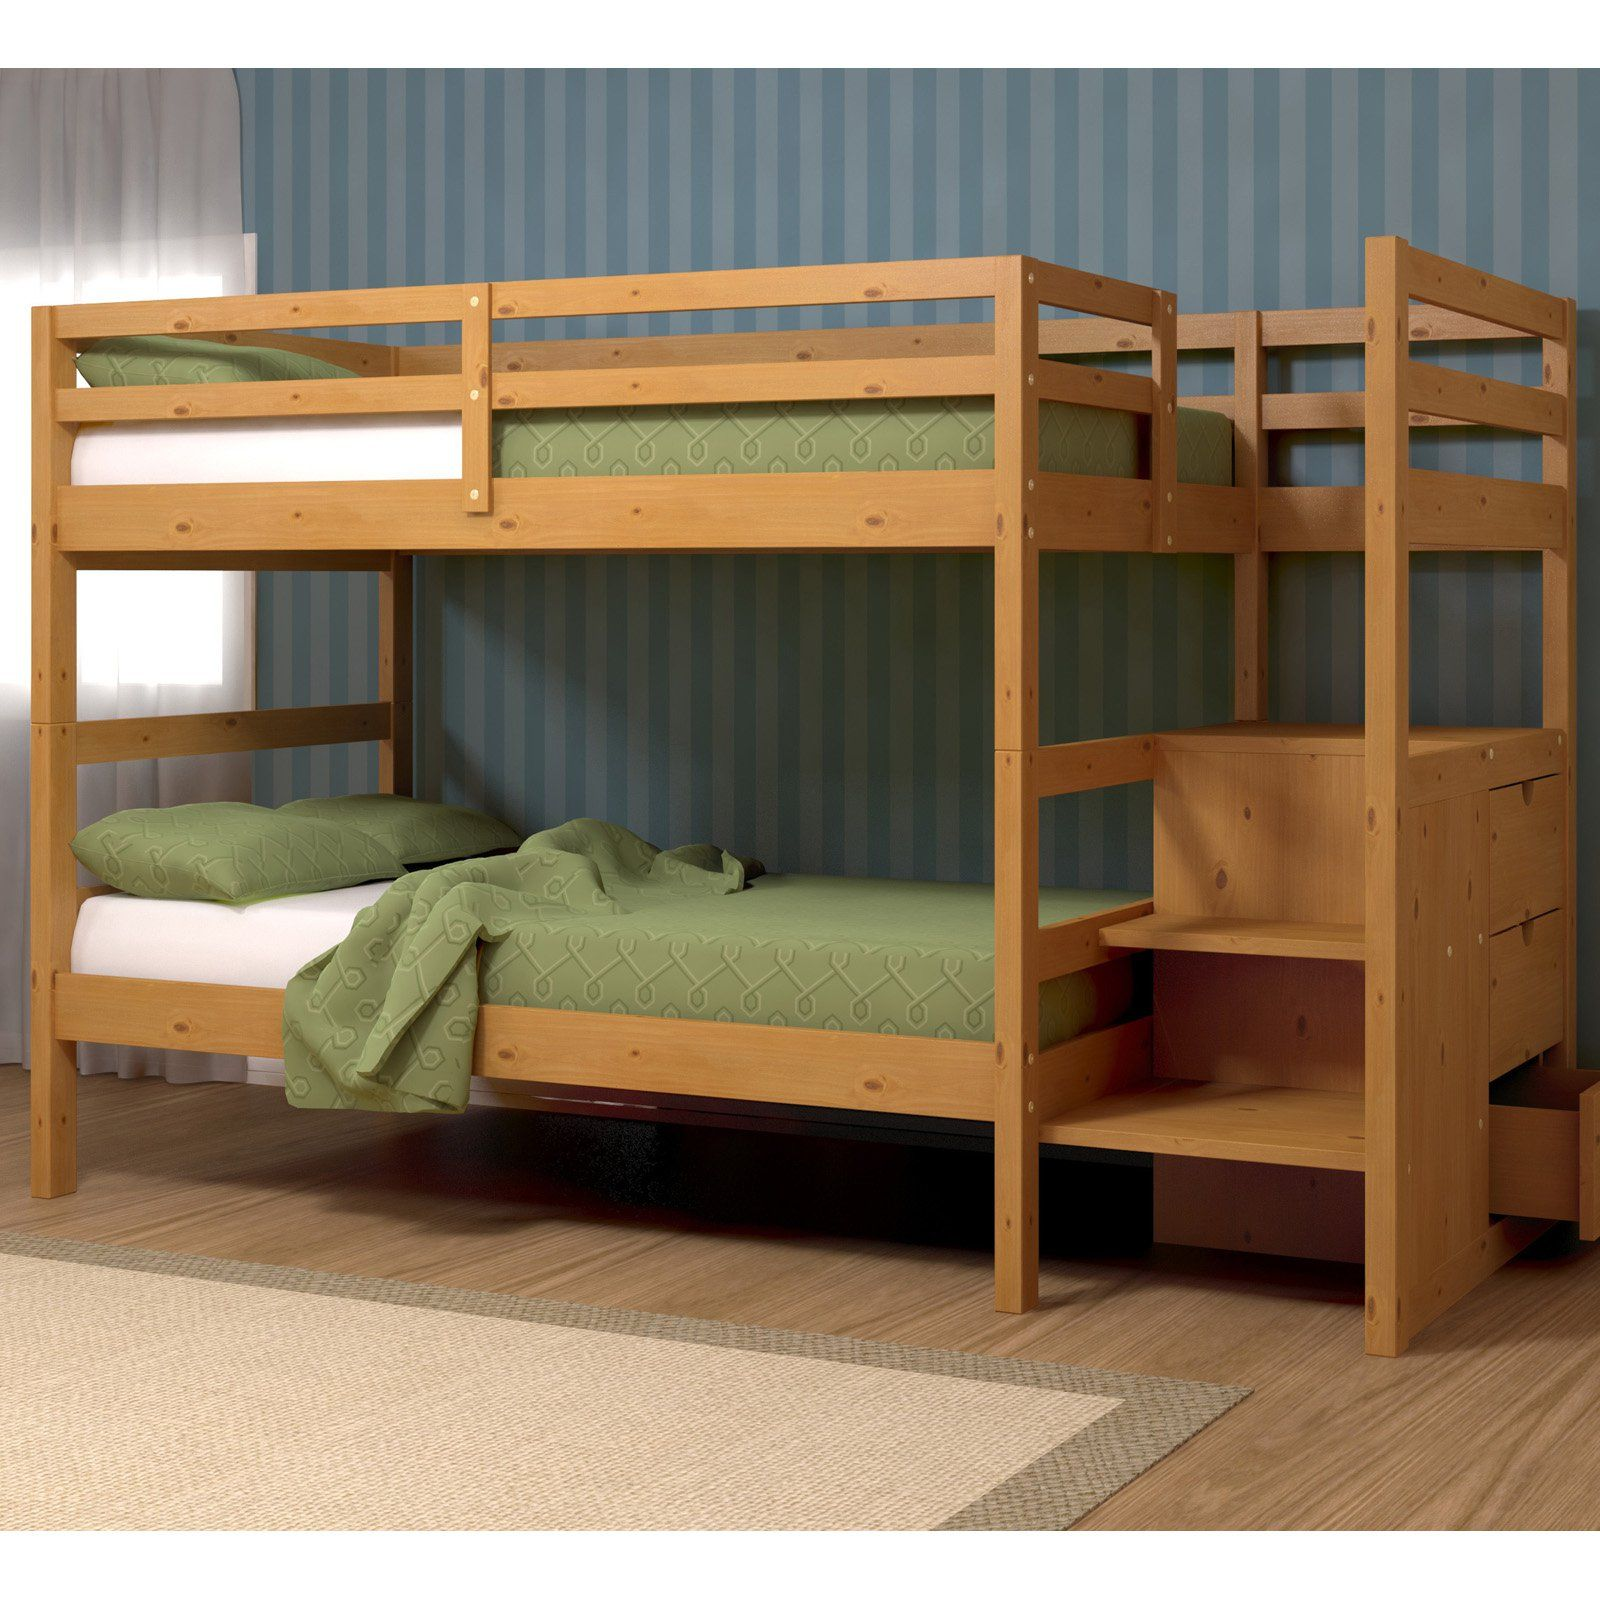 Twin Bunk Beds with Stairs - Kids love bunk beds! Check out Toddlerbunkbeds.net